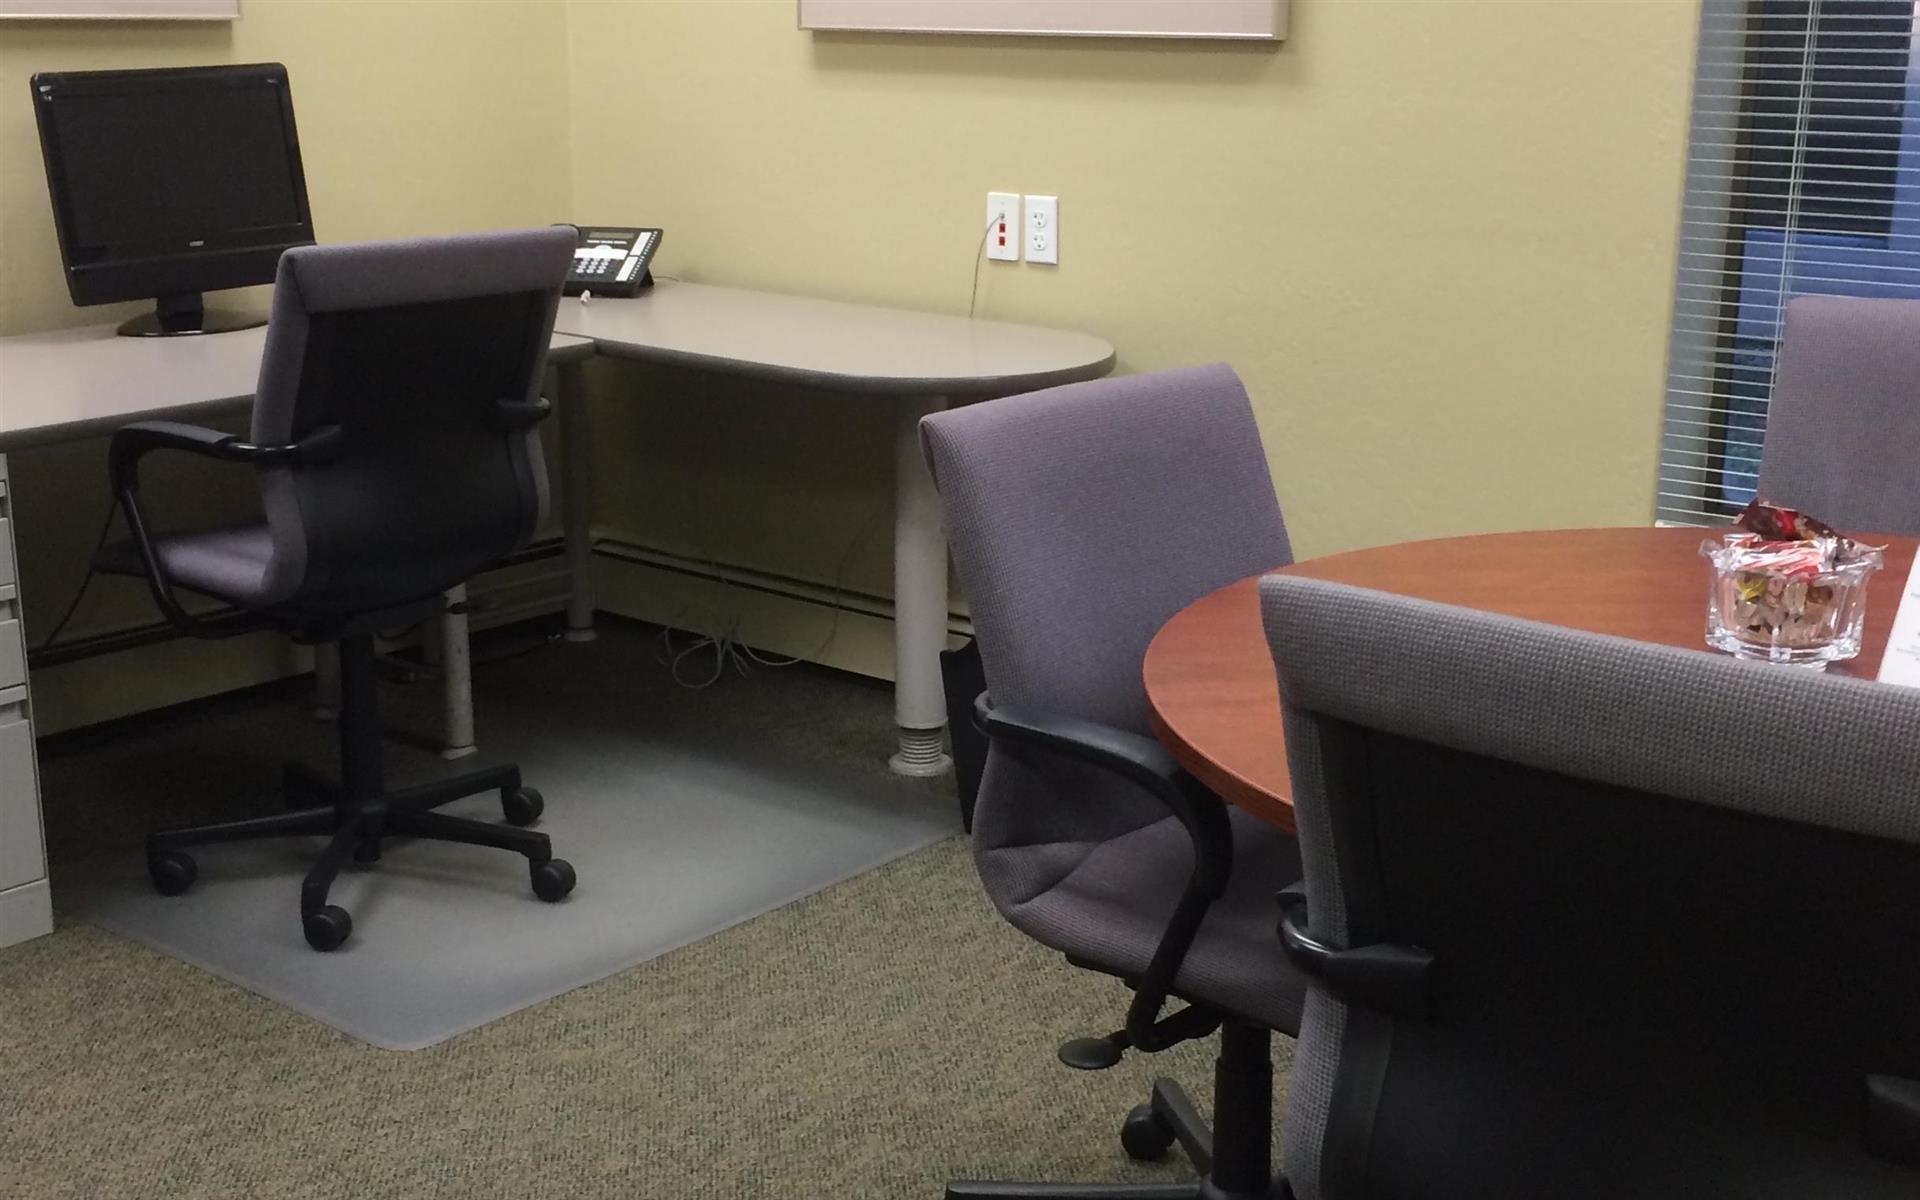 Pulone & Stromberg, Inc., dba Pulone Reporting Services - Group Workspace on The Alameda, San Jose